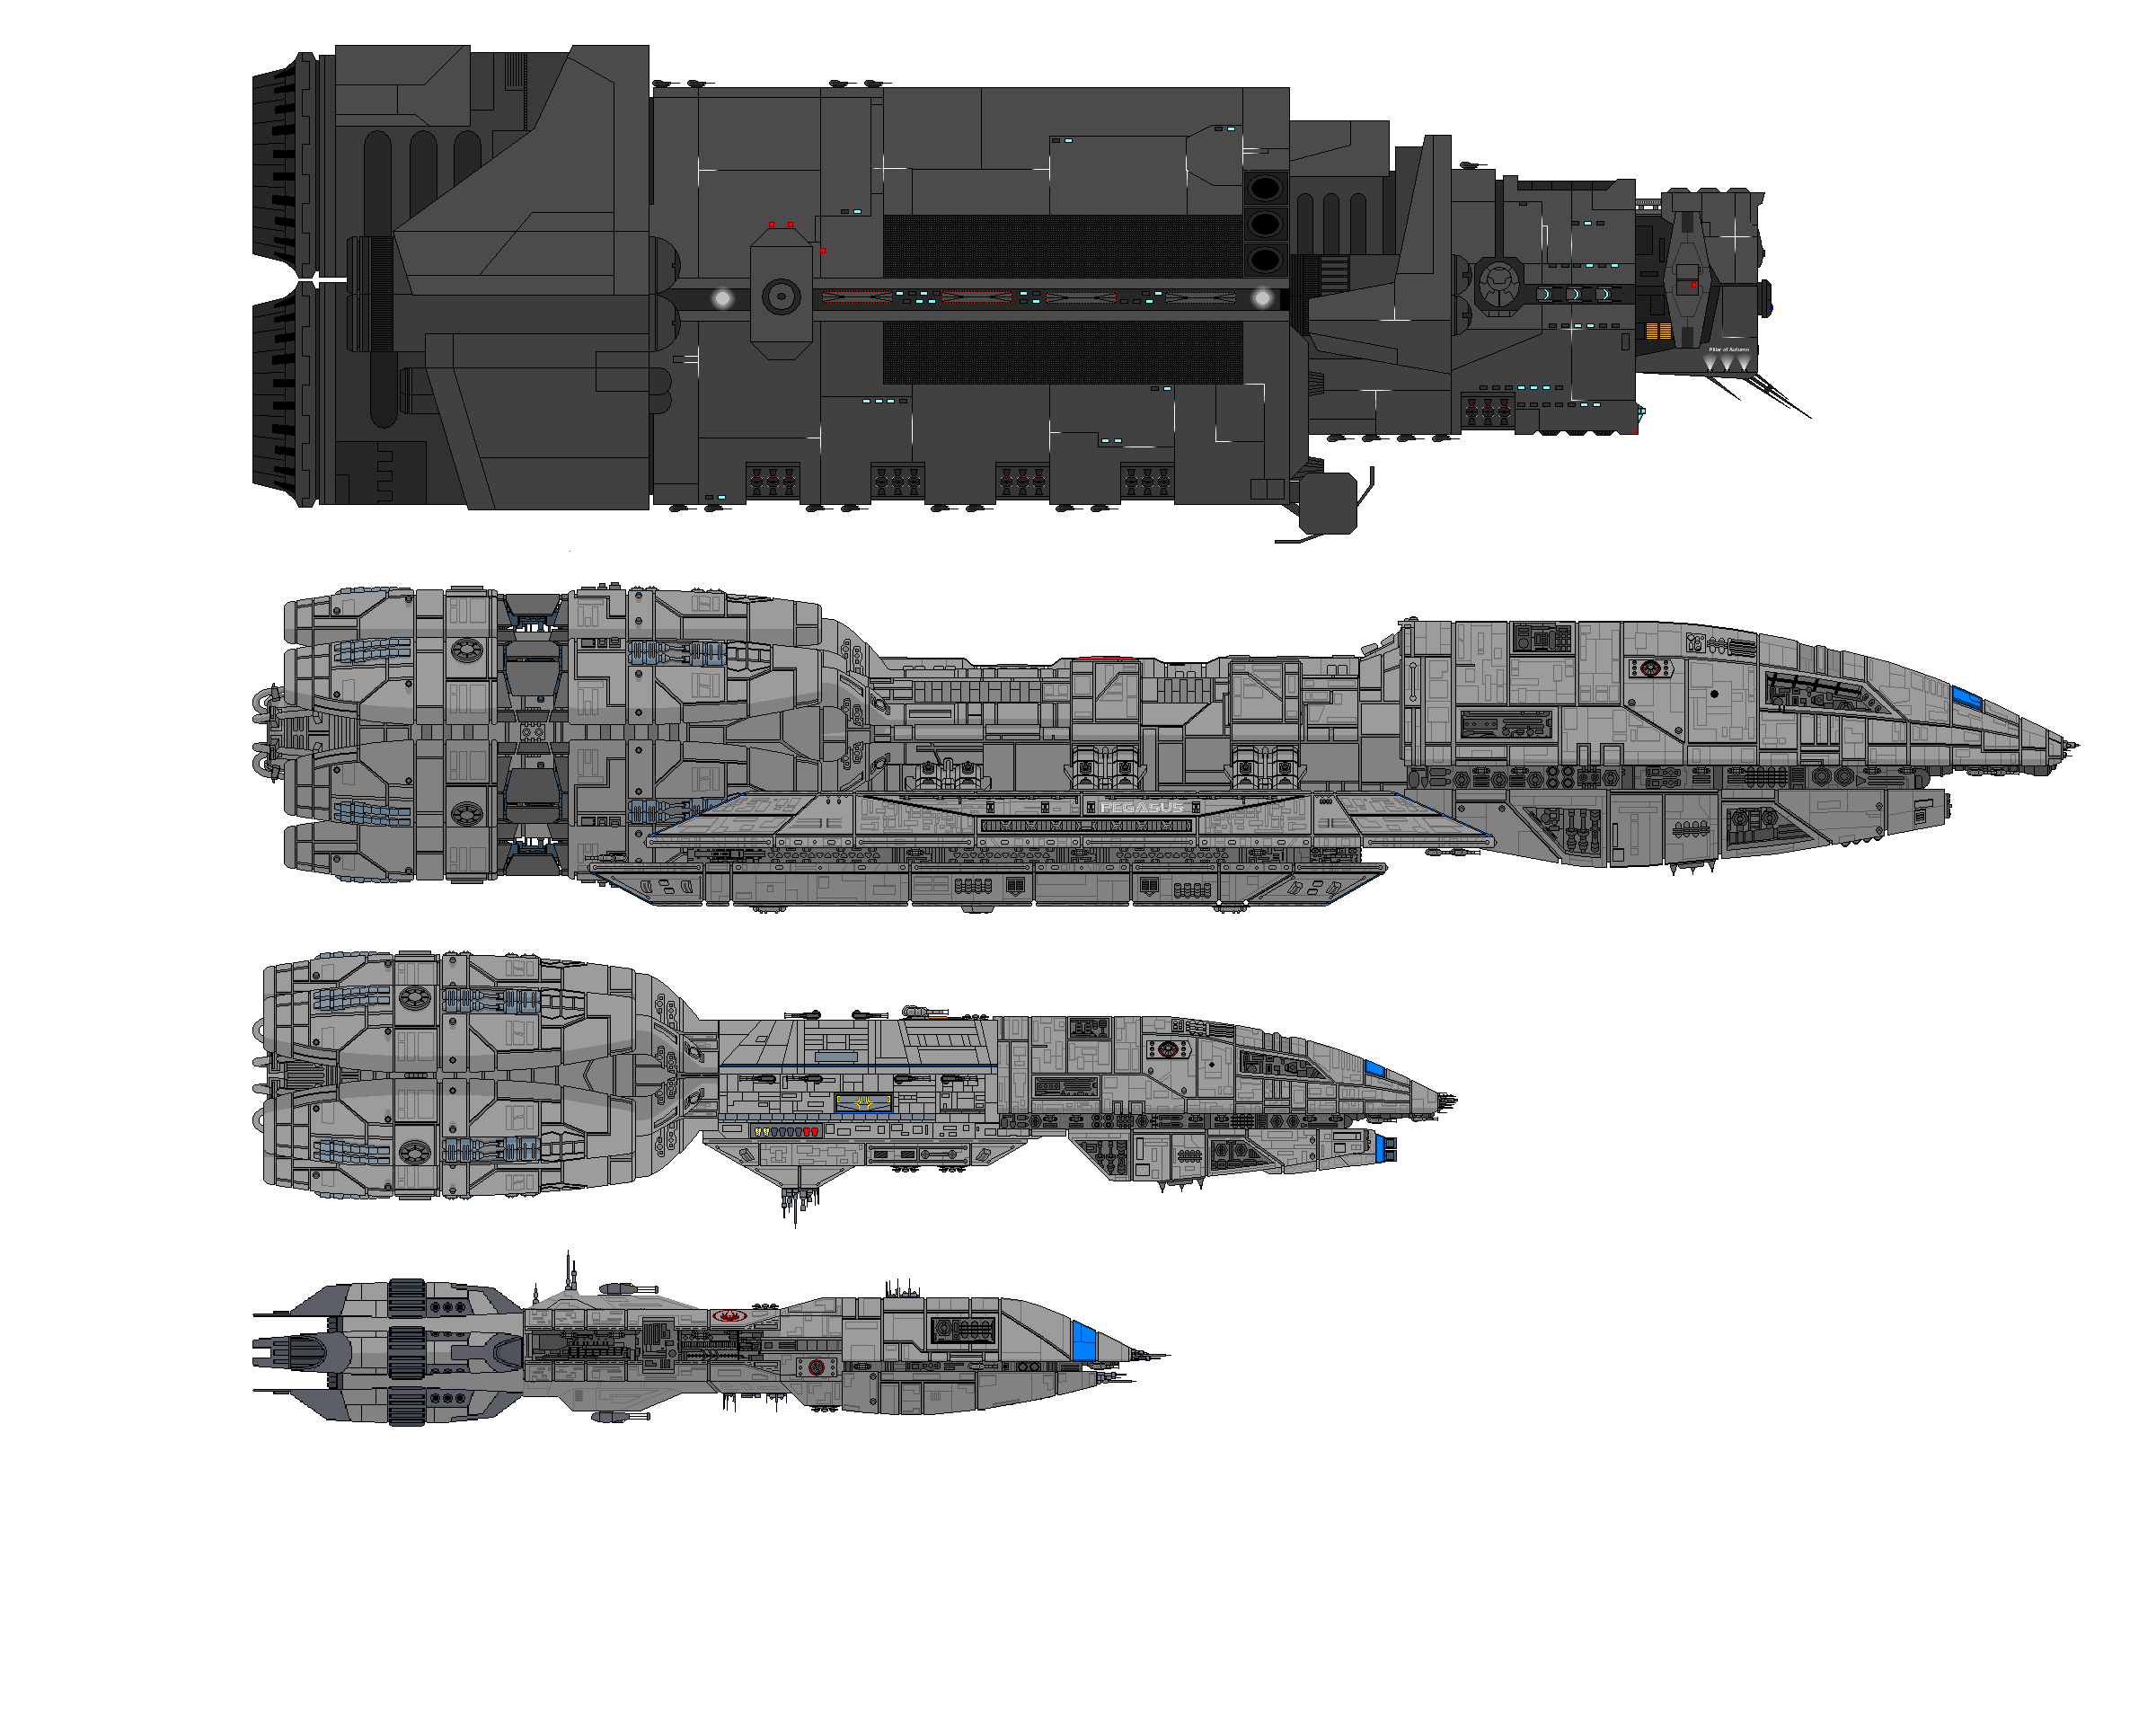 Unsc Ship Designs – Wonderful Image Gallery